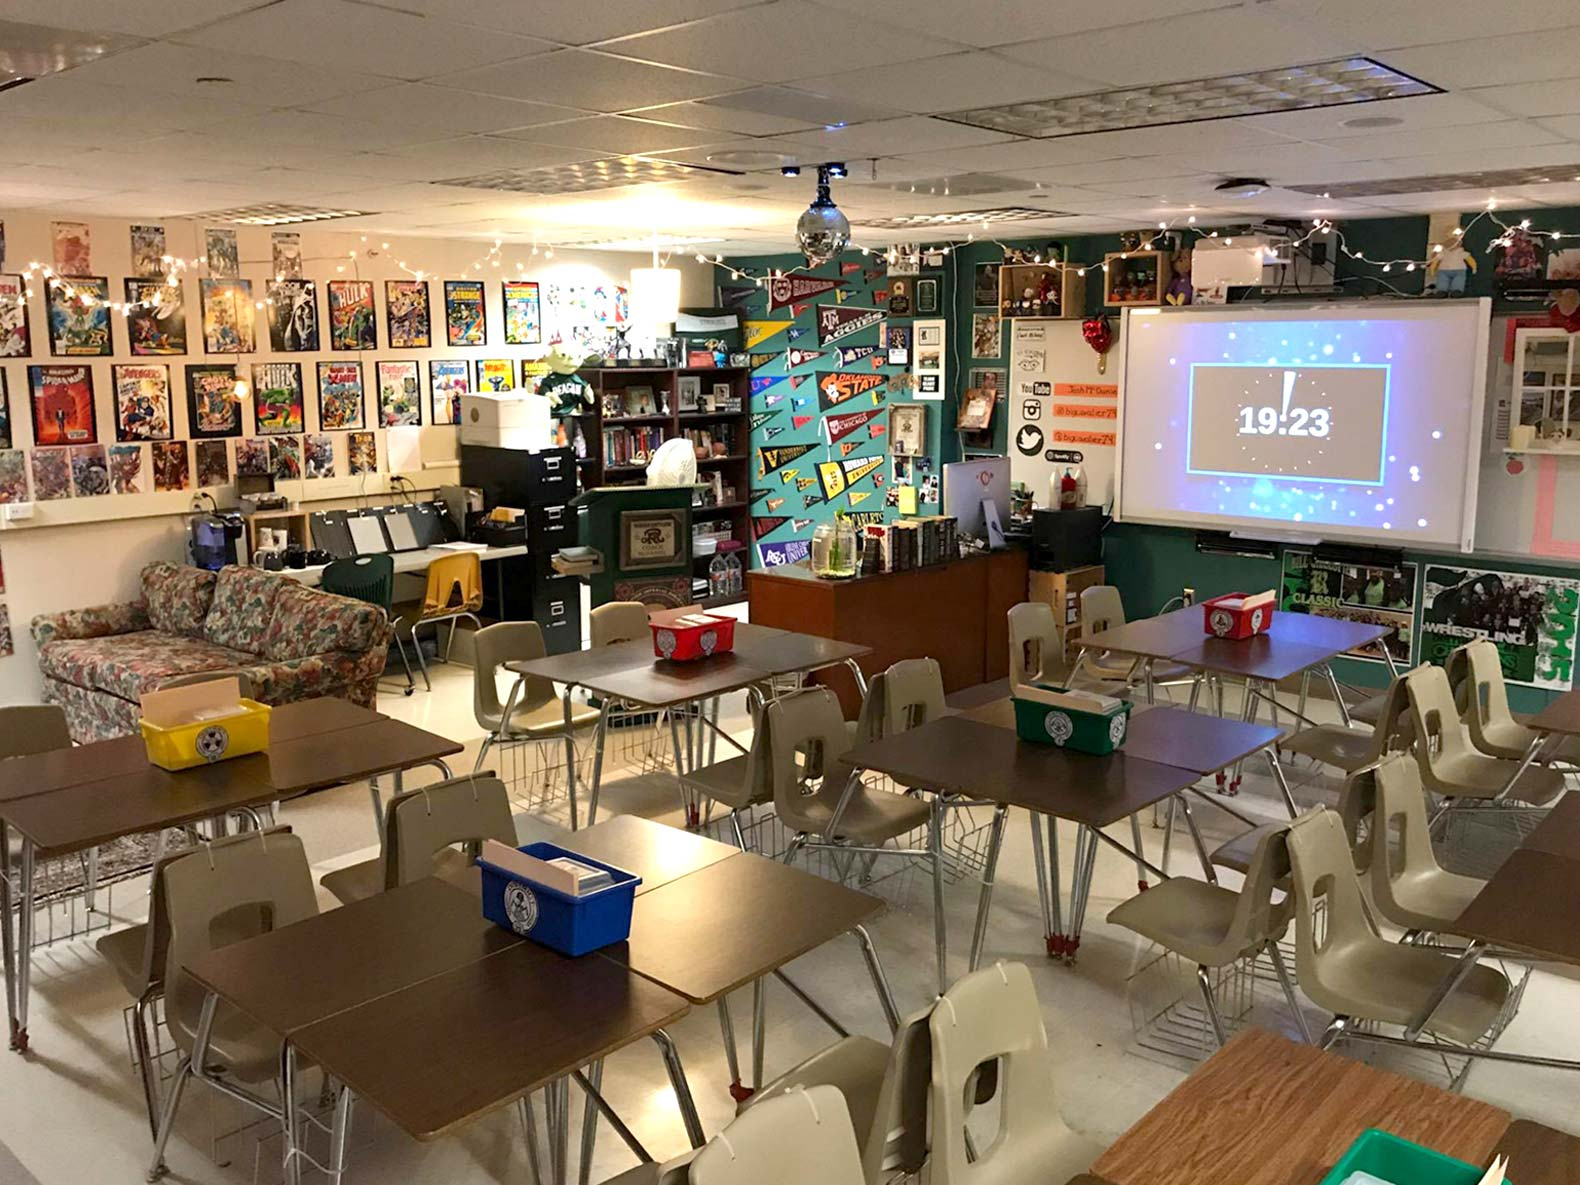 Modular Classroom Seating ~ High school flexible seating done right edutopia